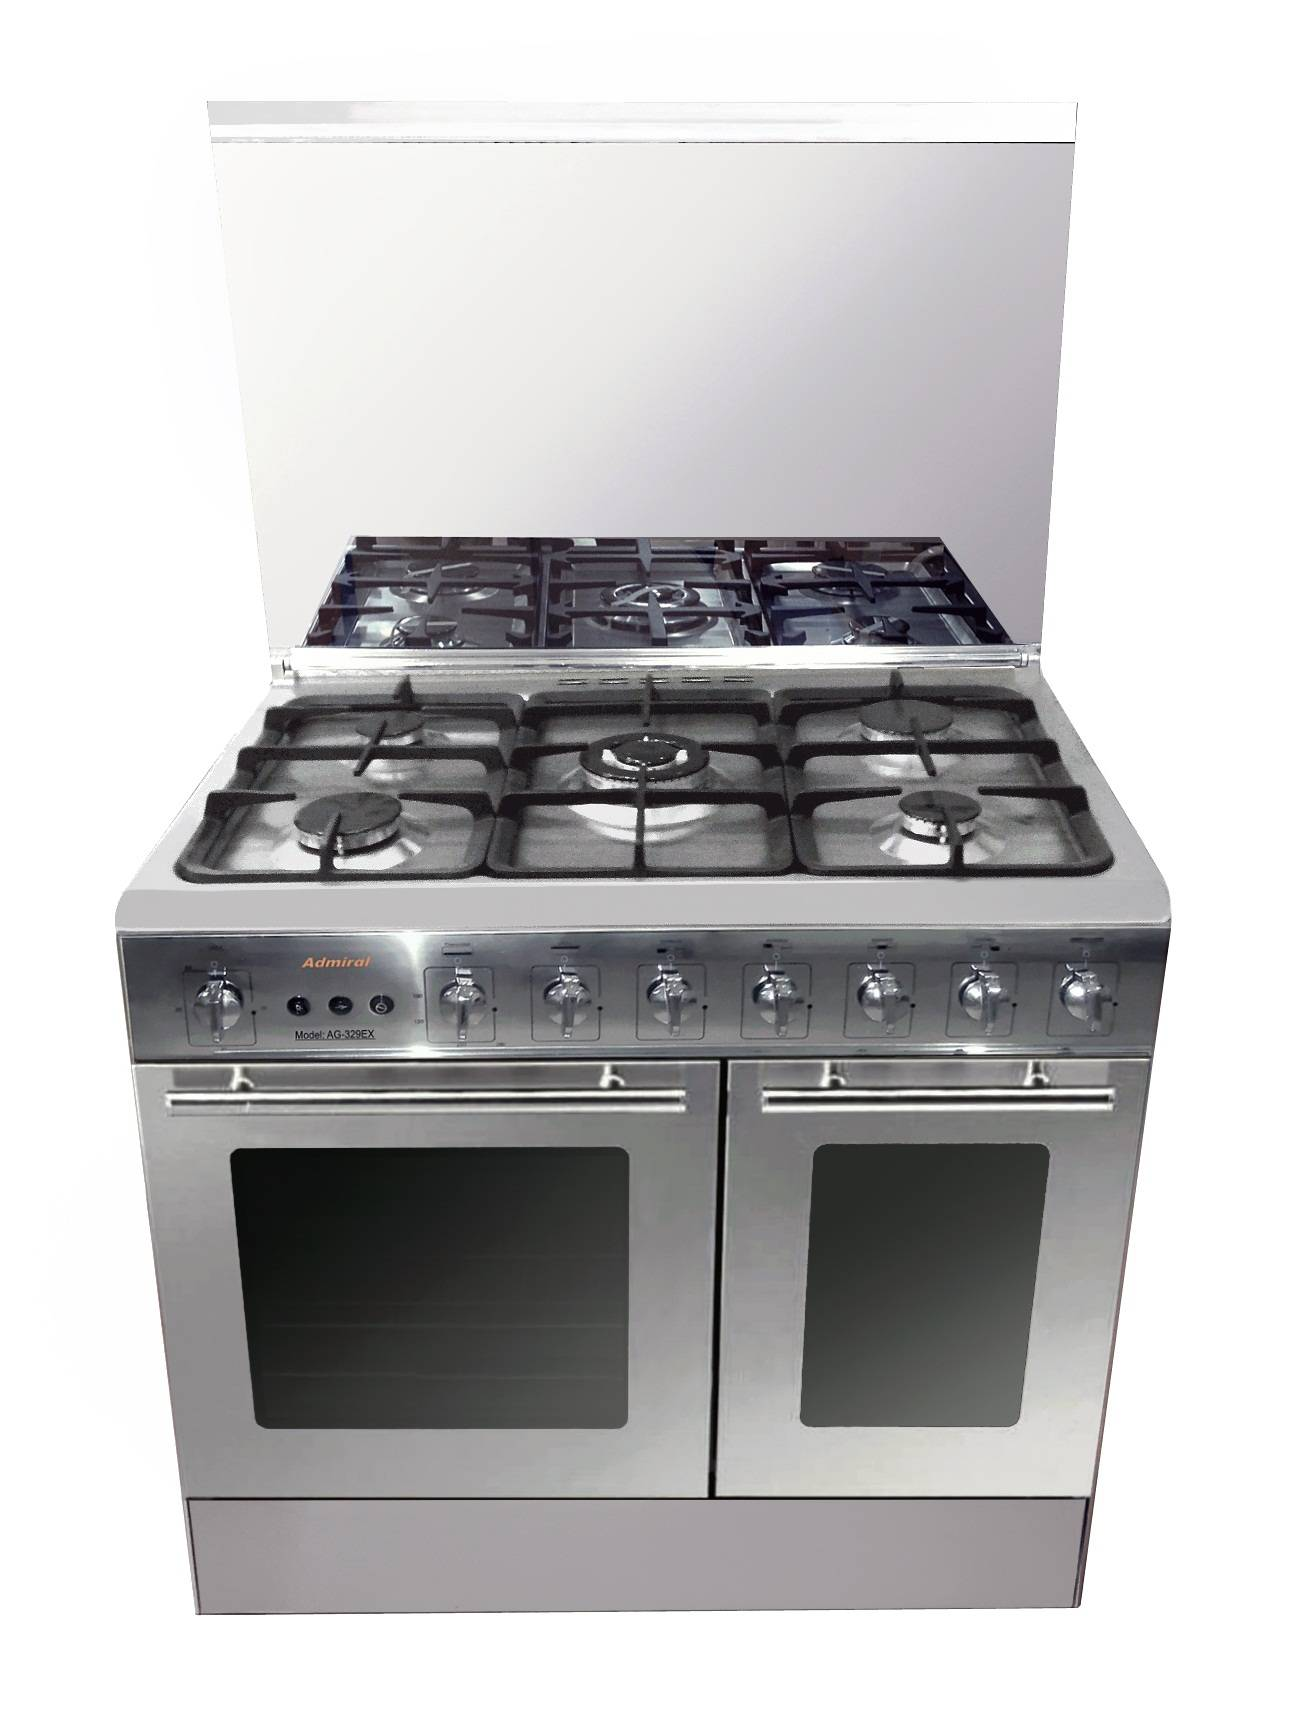 AG-329EX DDR ADMIRAL 90X60 OVEN